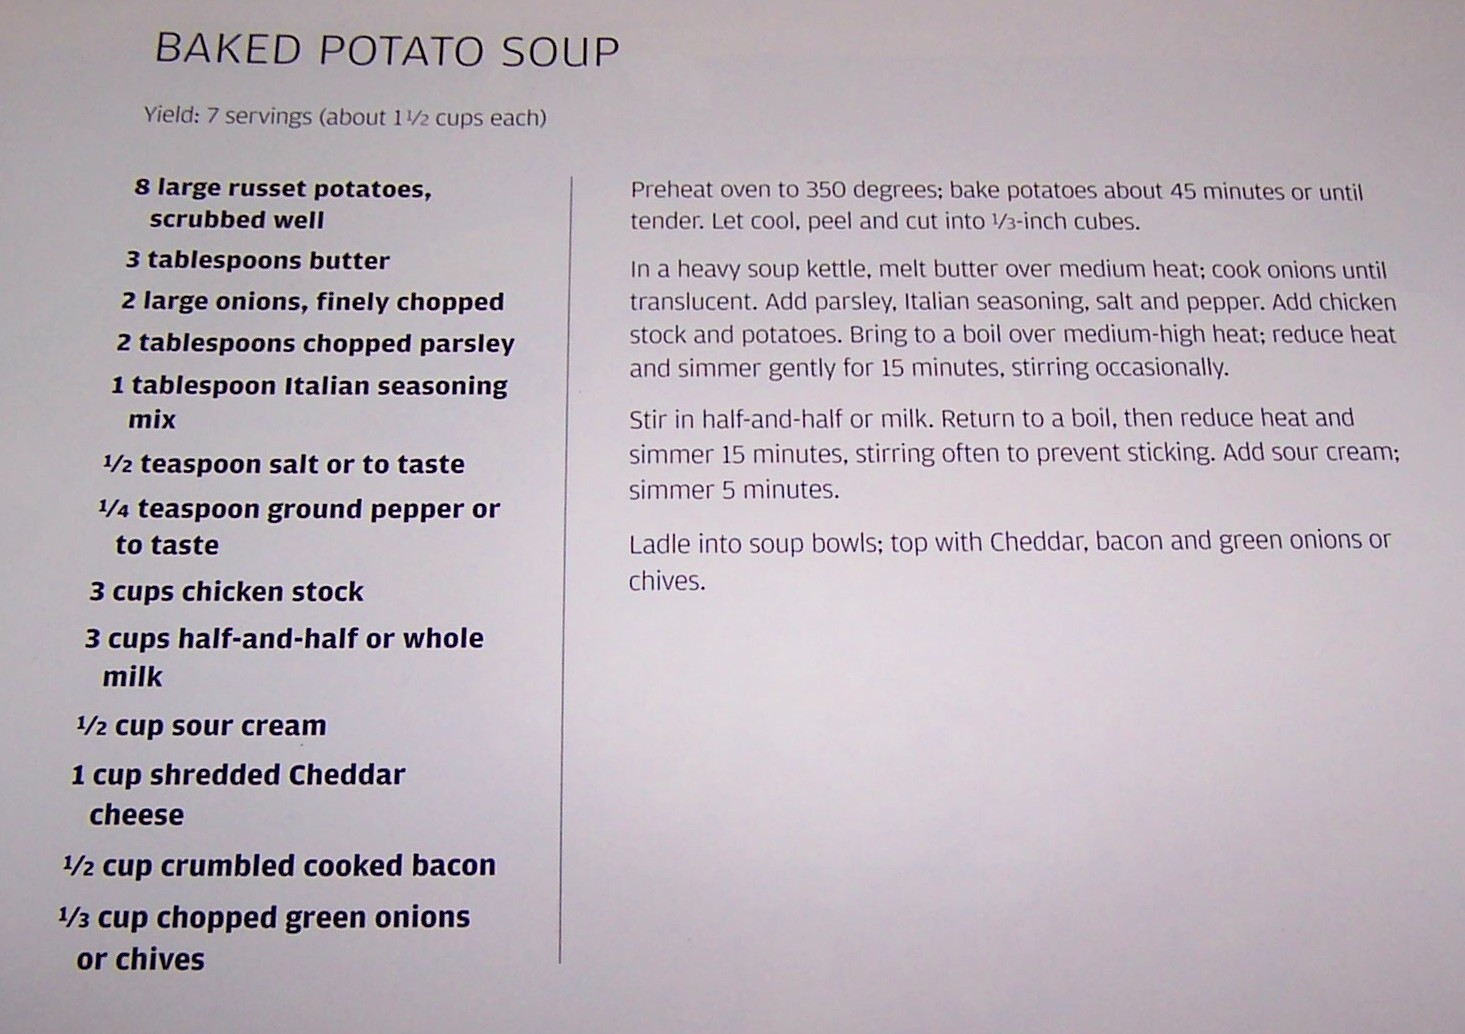 Olla Podrida Baked Potato Soup From The Magpie Cafe